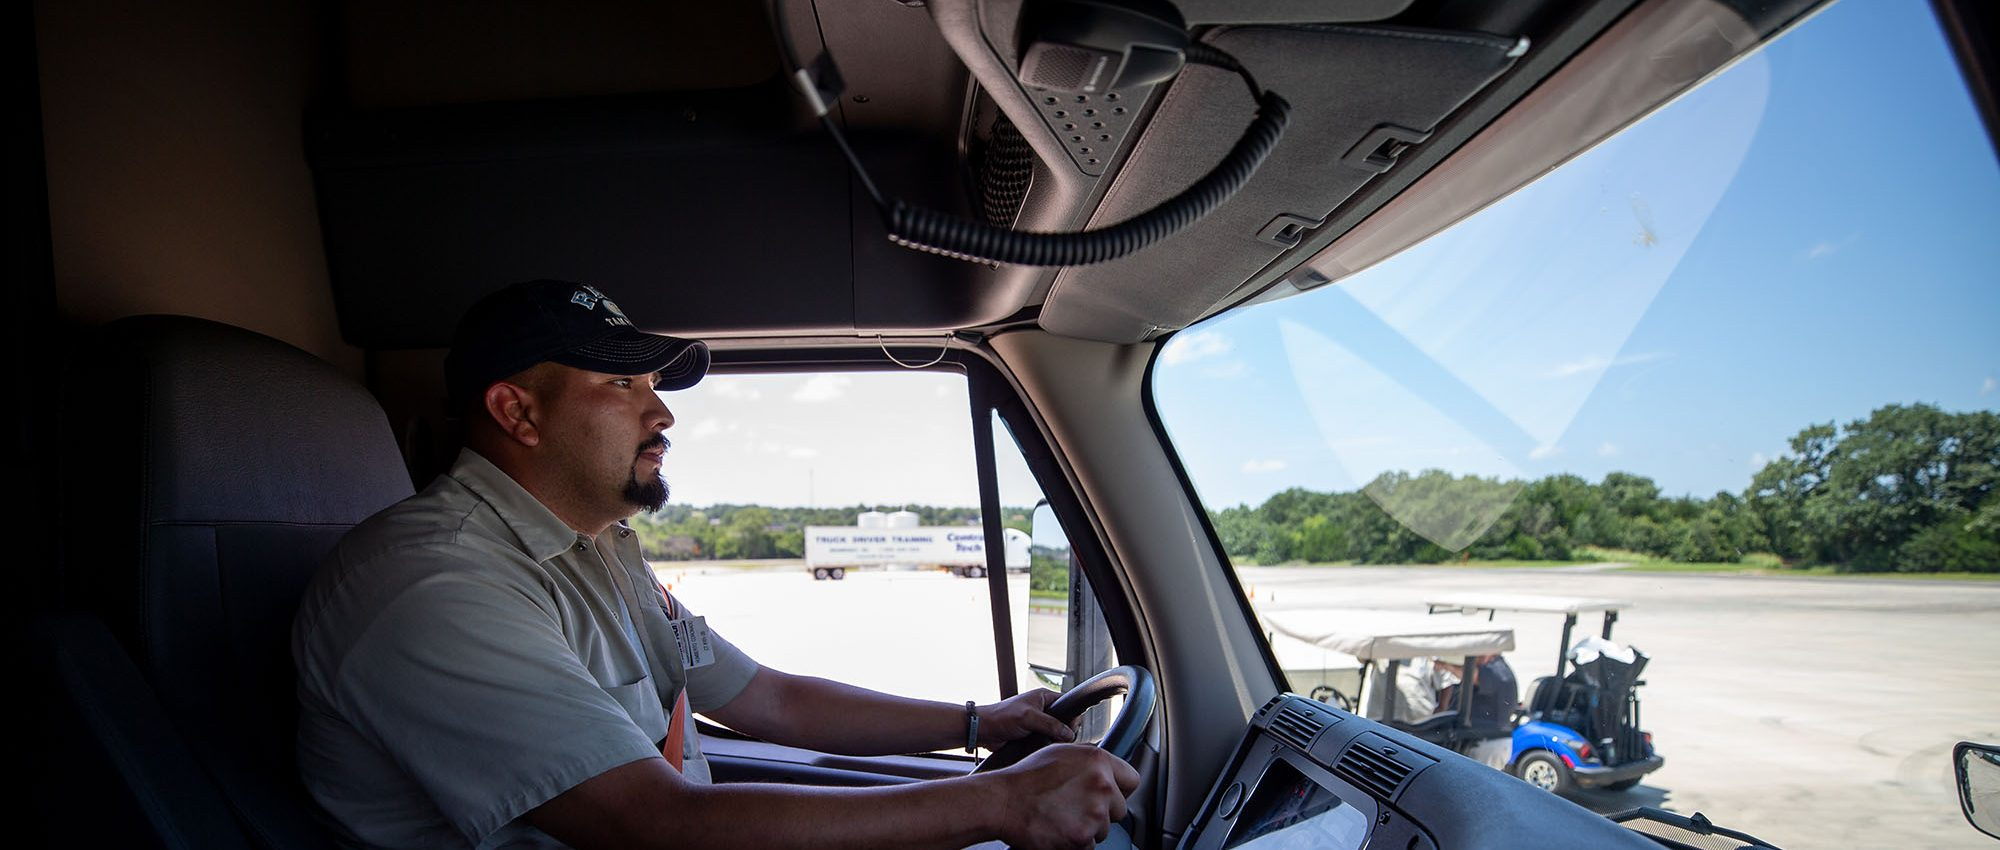 photo of a man driving a Central Tech semi truck